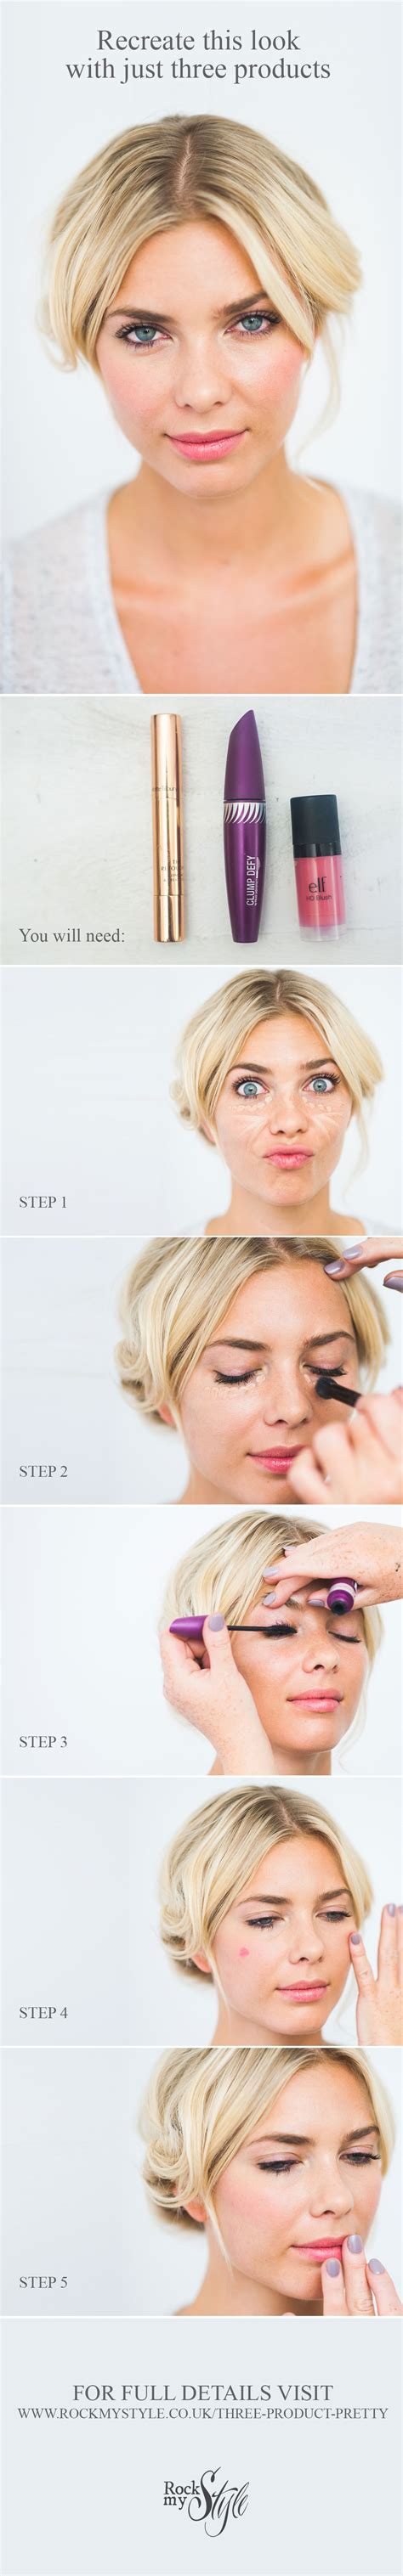 hair and makeup uber my 3 product makeover for rock my style makeup by jodie